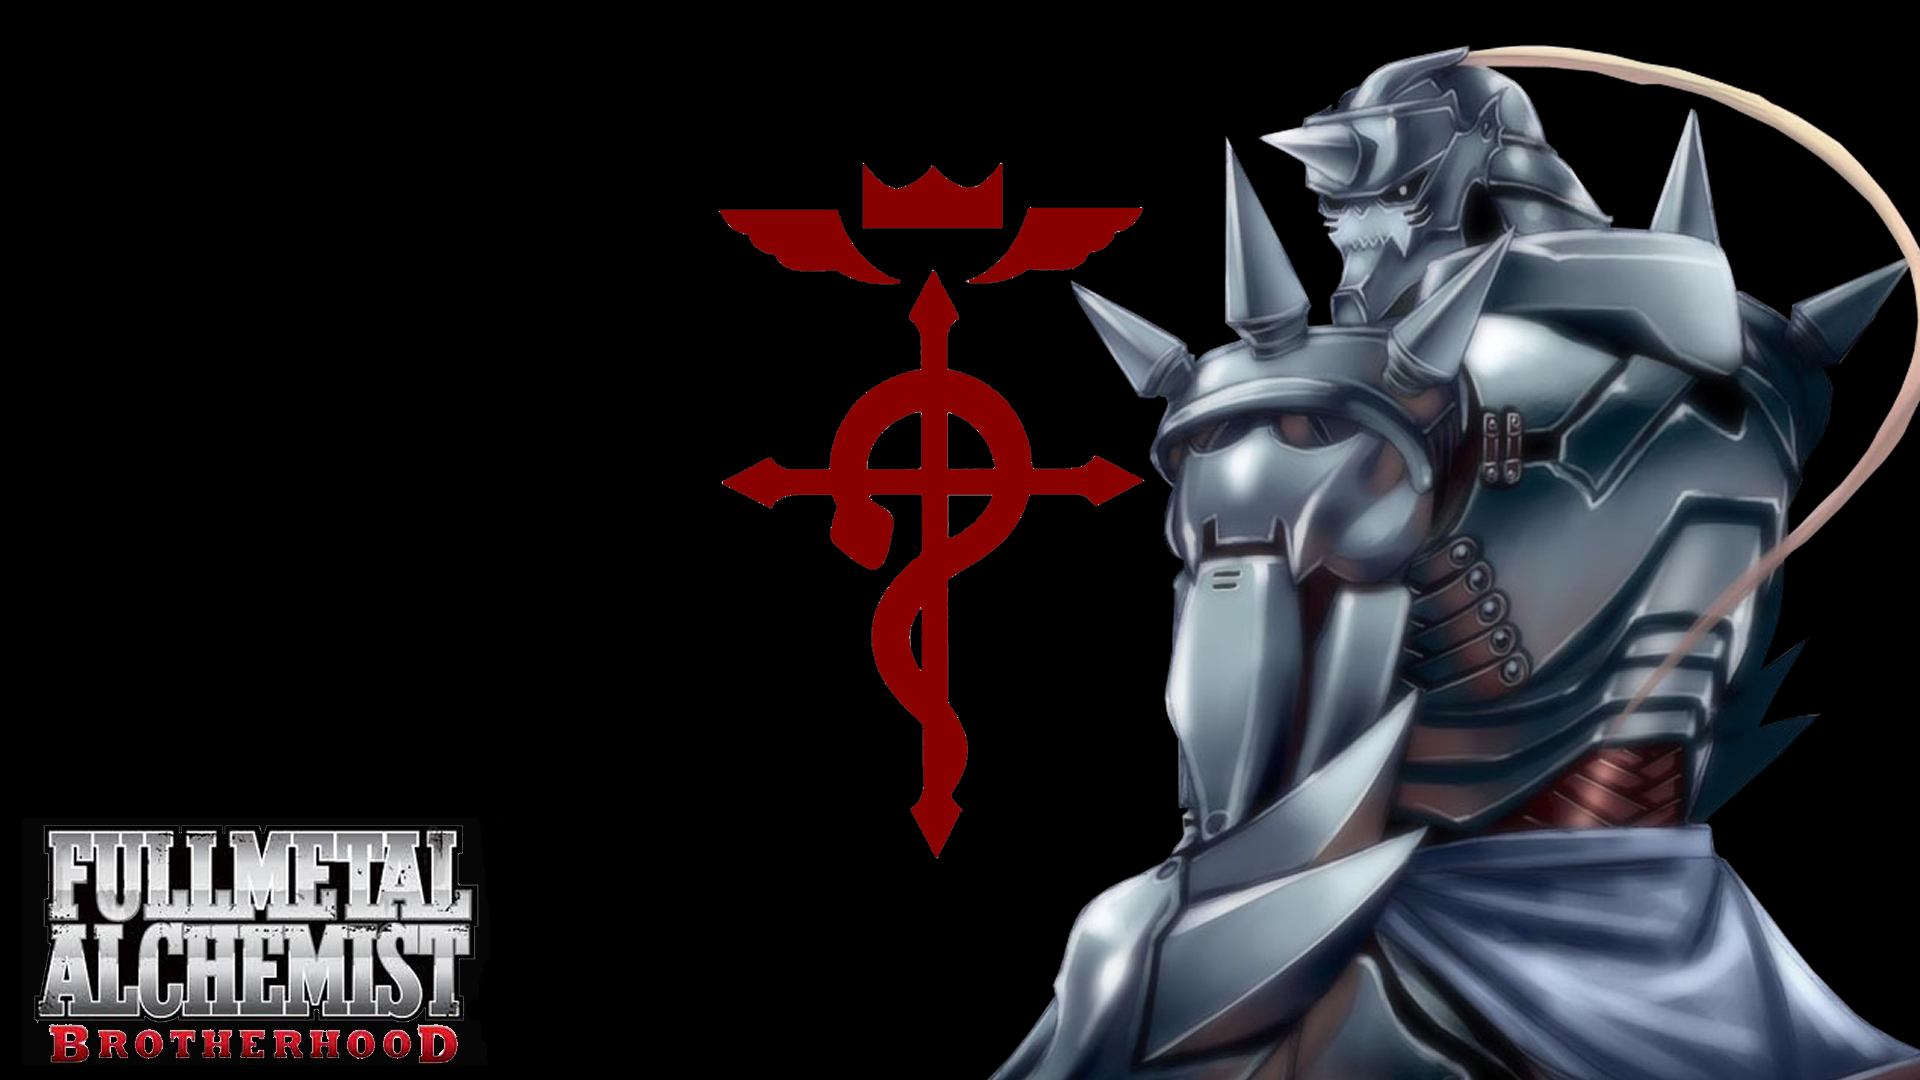 Fullmetal Alchemist Alphonse Computer Backgrounds 4083 1920x1080